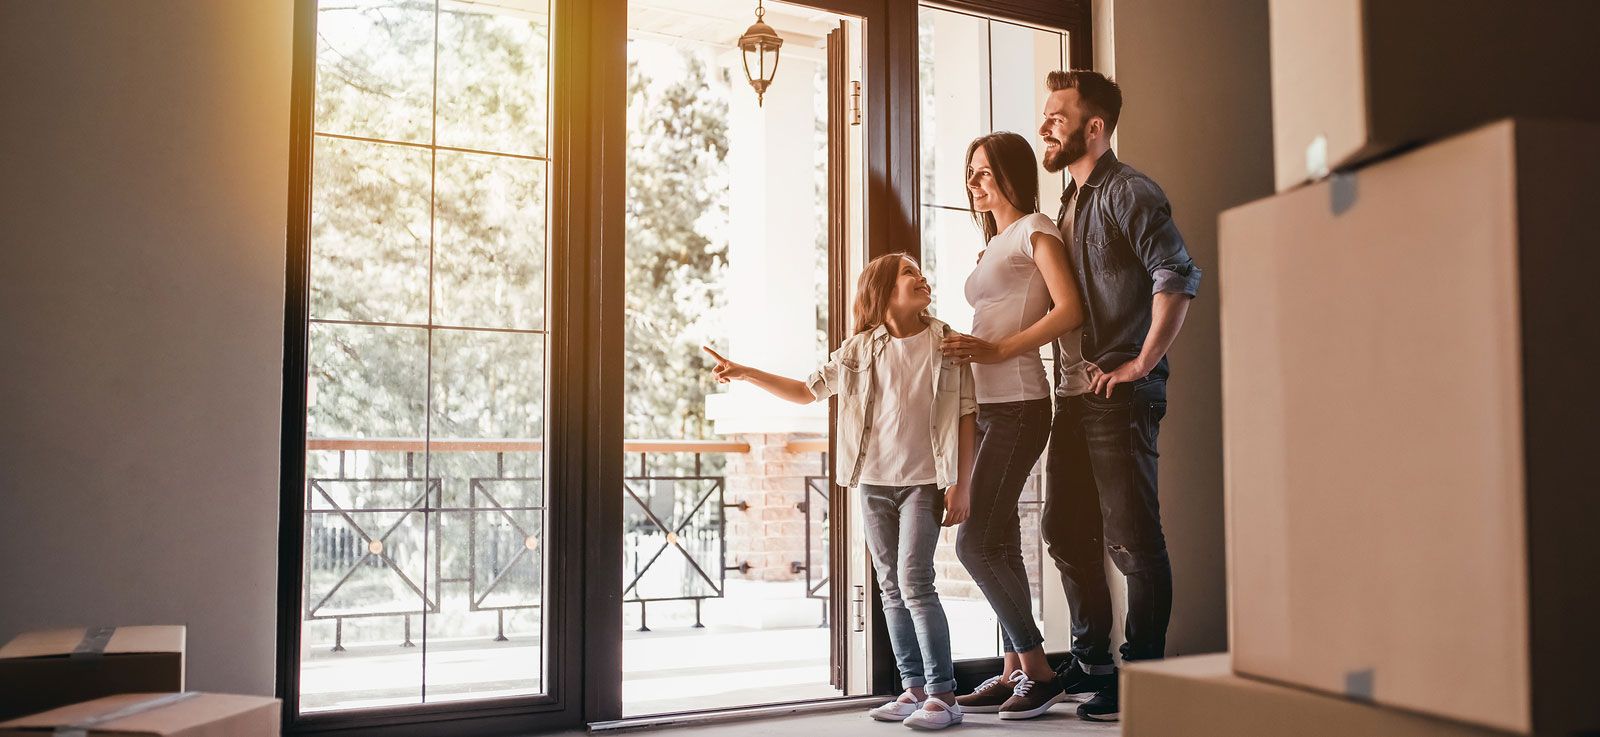 Buying & Selling Your Home - with Casey Spence of ERA West Wind